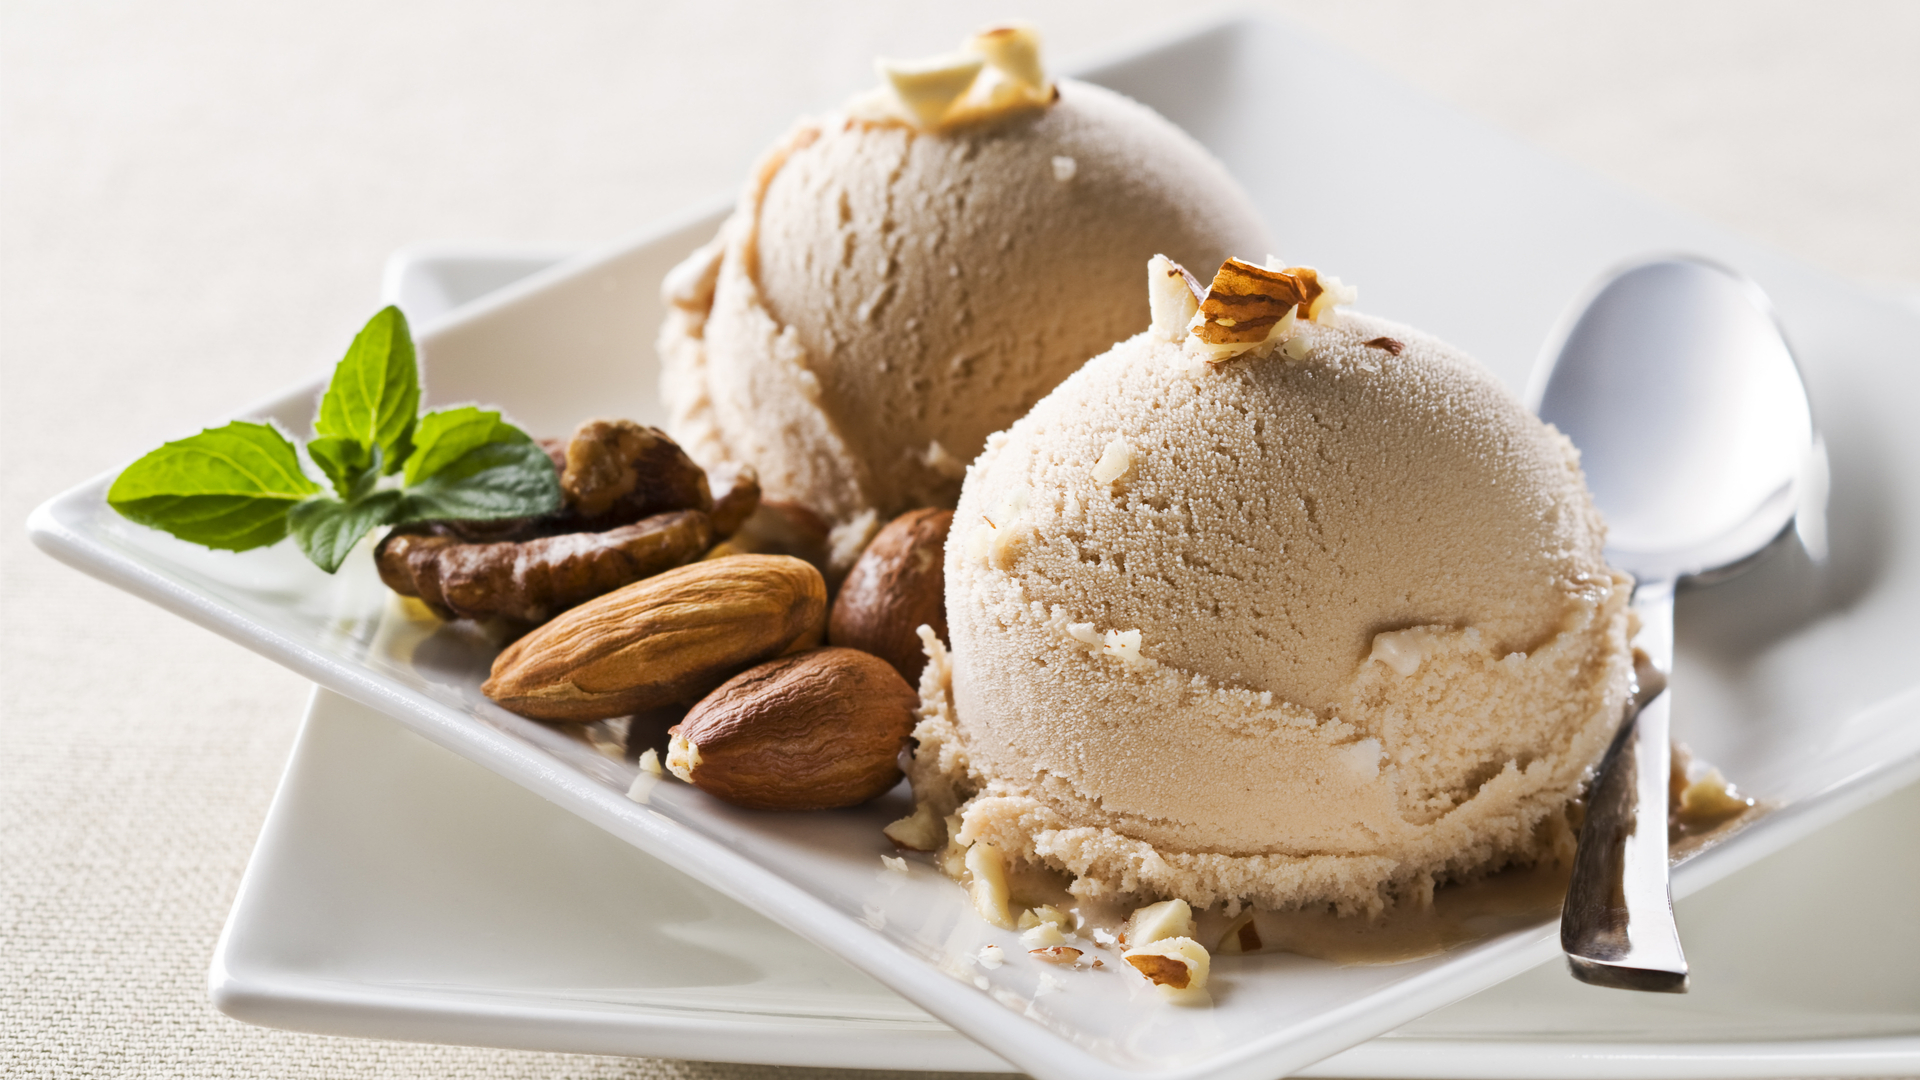 Almond ice cream restaurant